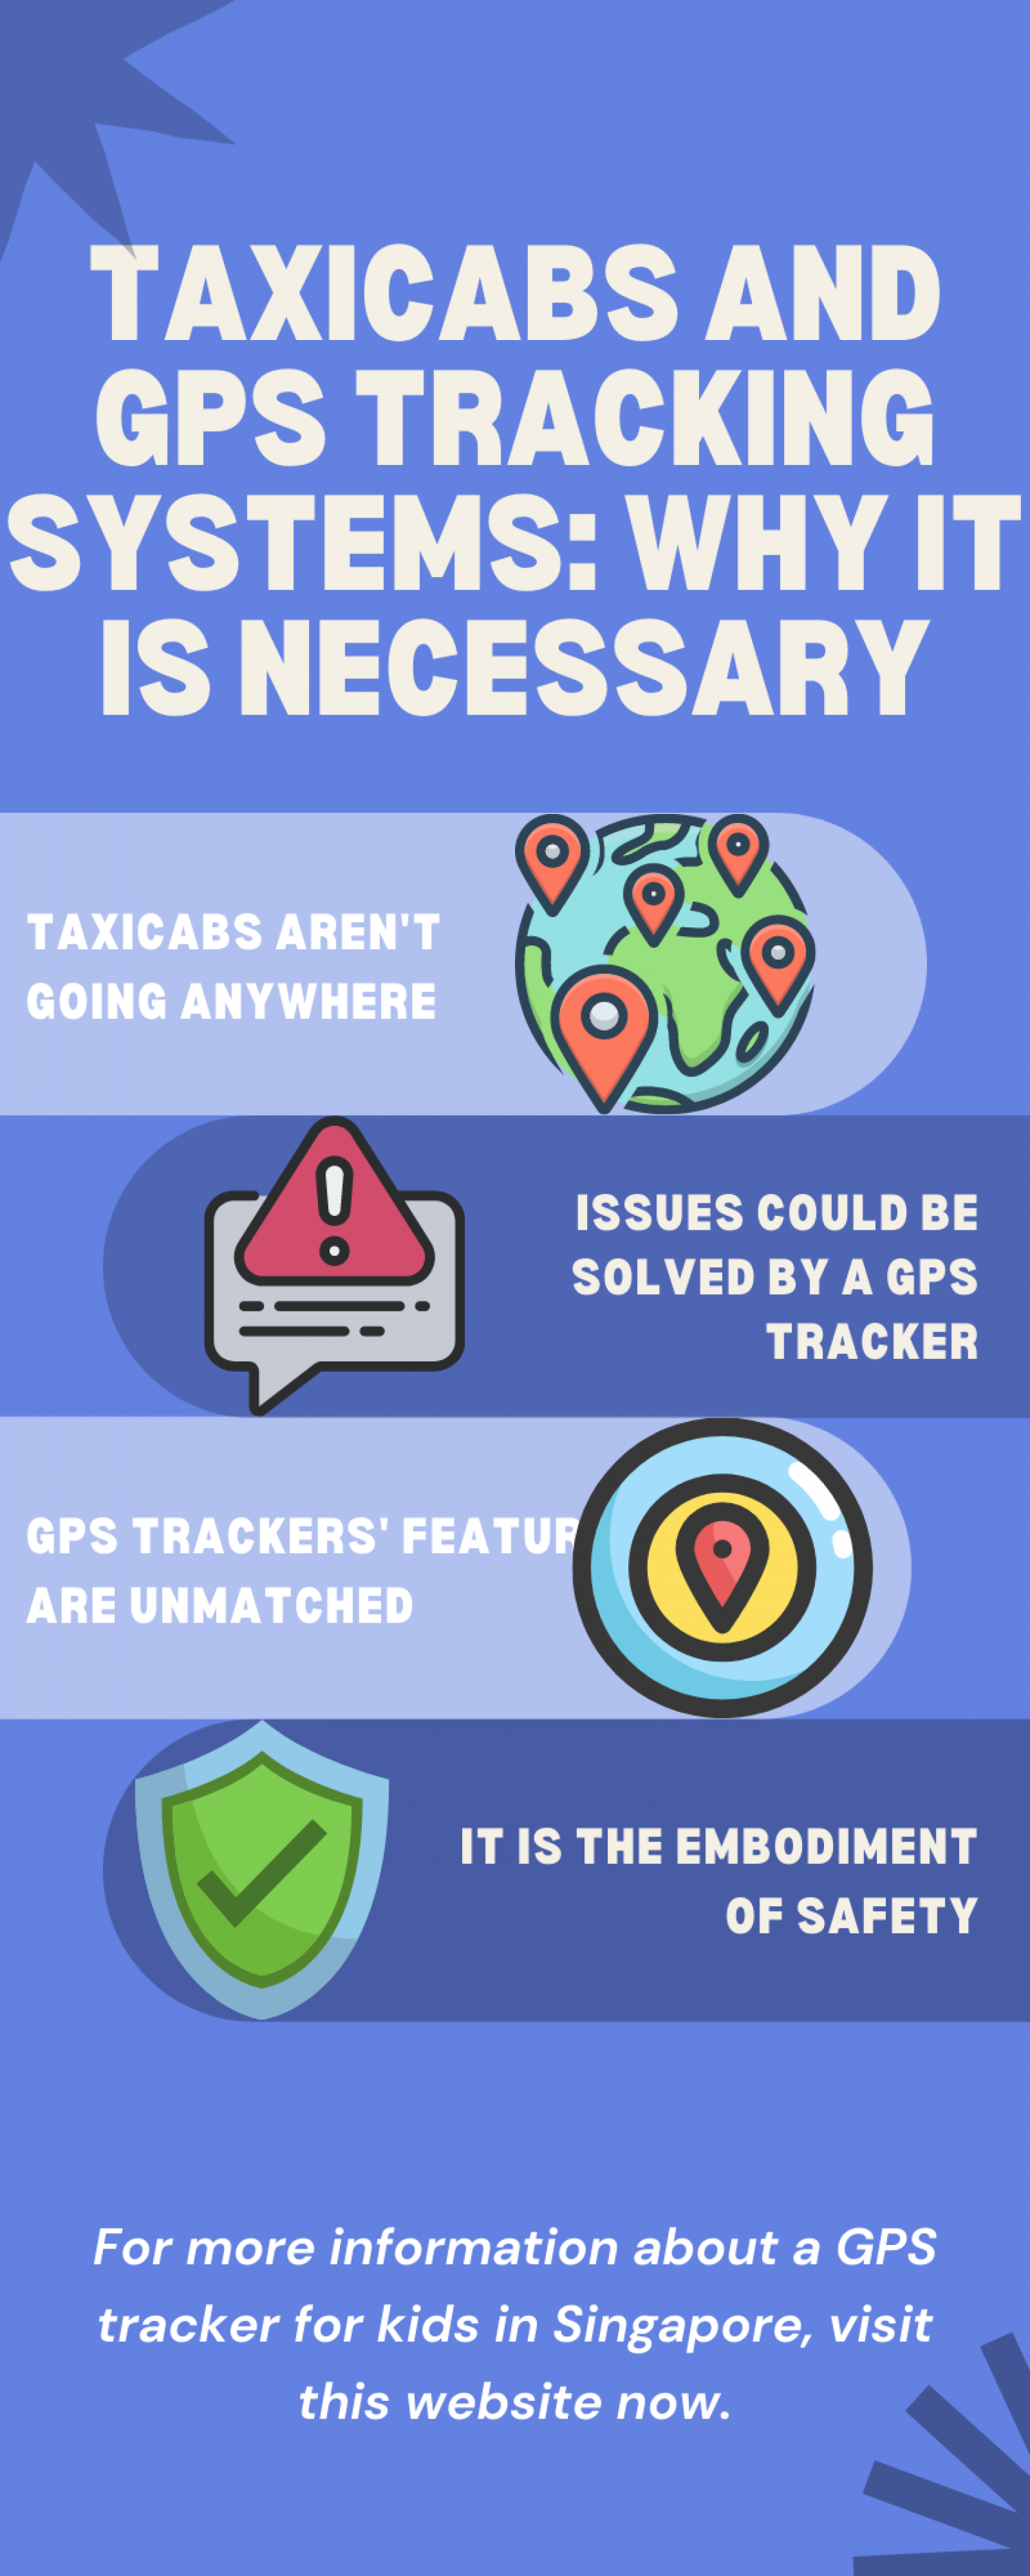 Taxicabs and GPS Tracking Systems: Why it is Necessary Infographic